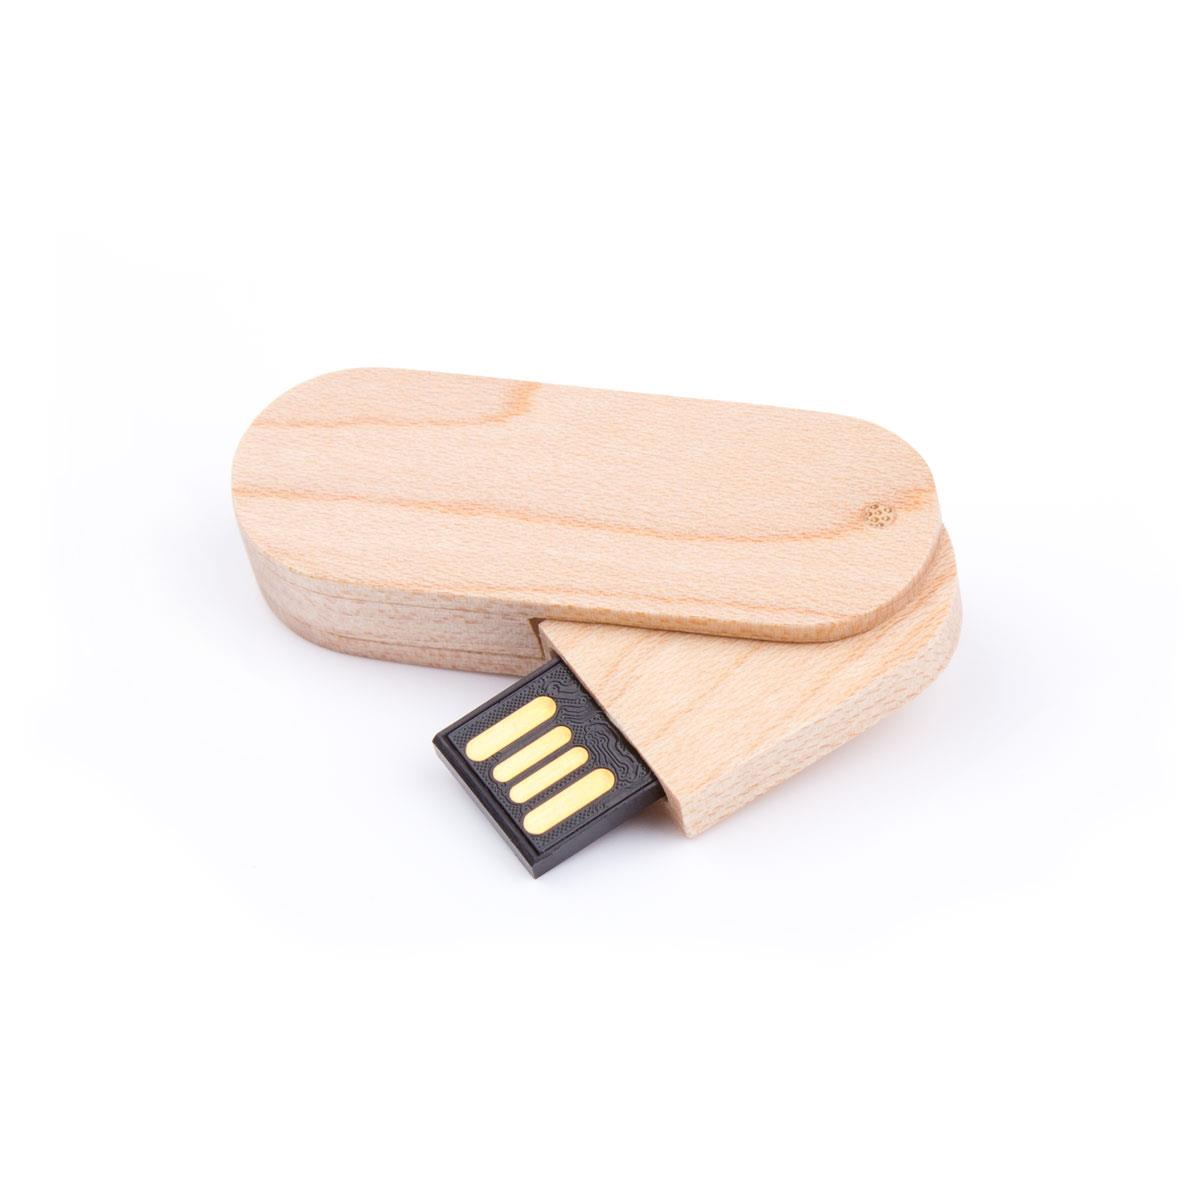 USB Stick Holz Swivel 512 MB